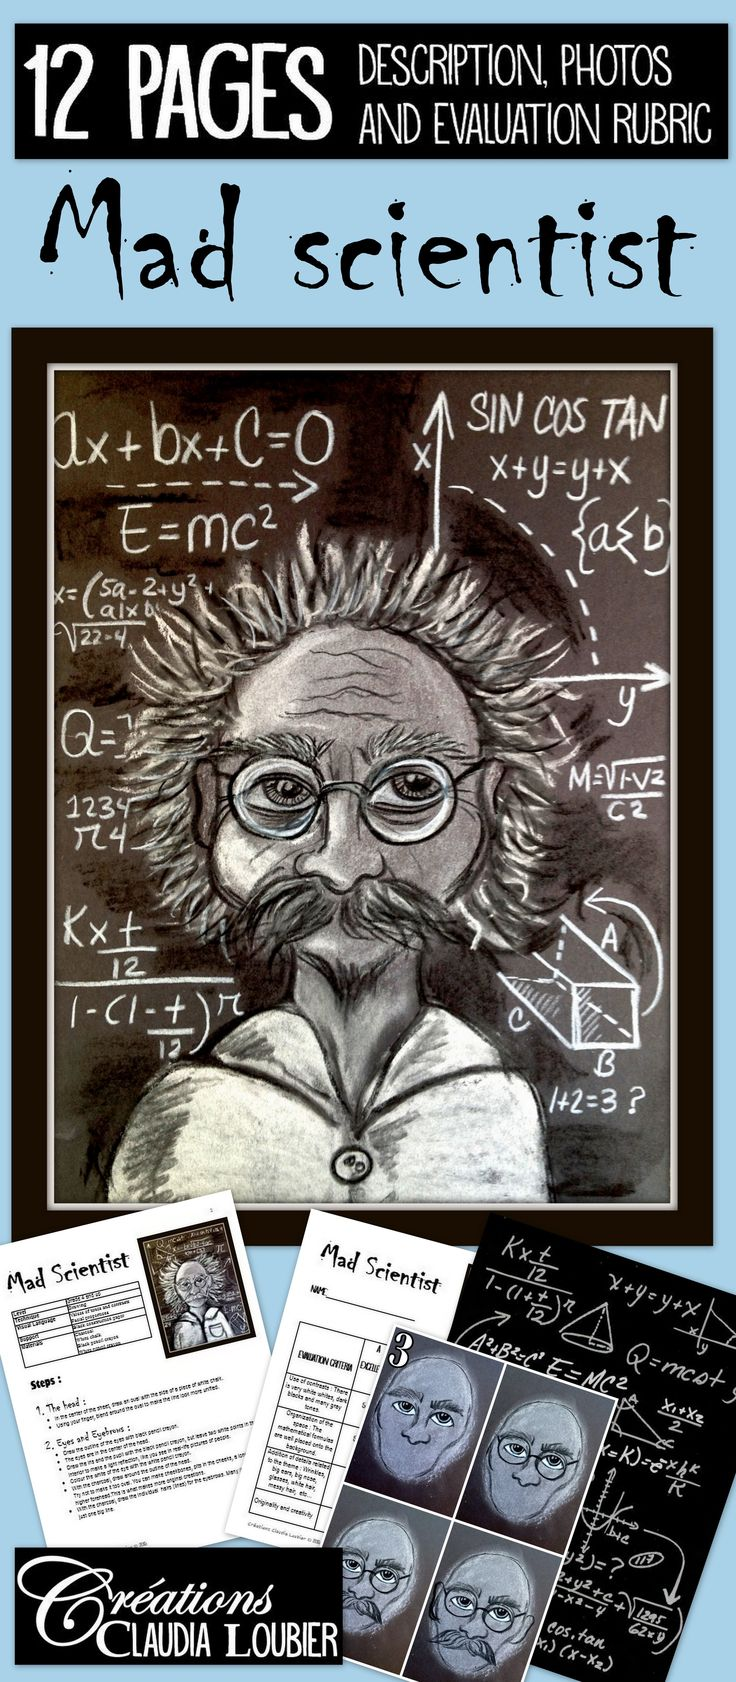 Here is a project for Grade 4 and up, and also for Junior High and High School students. Working with charcoal and white chalk on an original theme: The Mad Scientist! Each step is illustrated and the evaluation rubric is included. A printable sheet of mathematical formulas is also included in the document. The students will be working on contrasts, tones and facial proportions. A nice link to science courses.